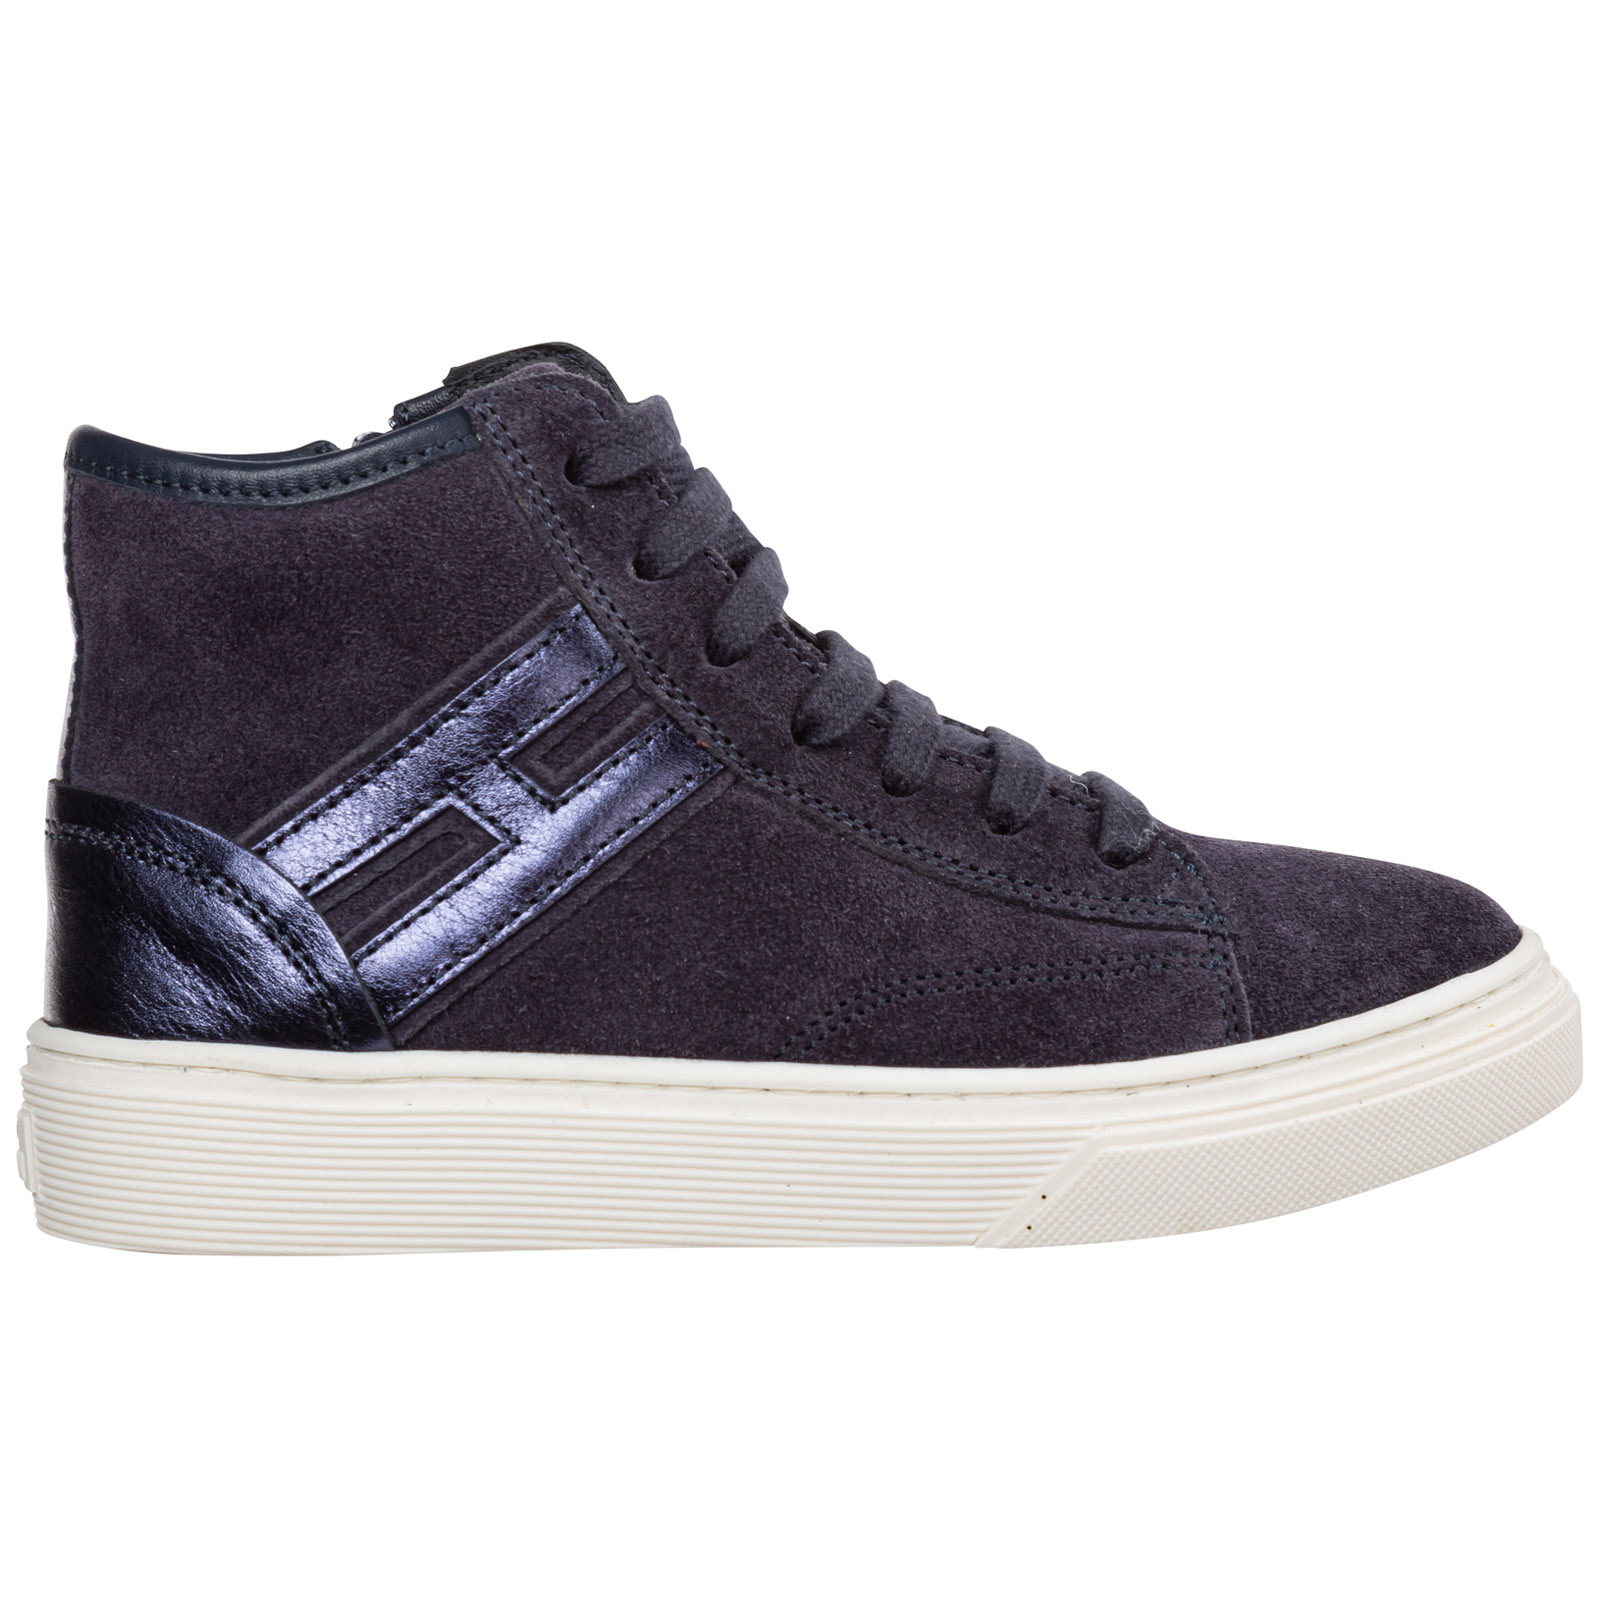 Hogan Sneakers BOYS SHOES BABY CHILD HIGH TOP SNEAKERS SUEDE J340